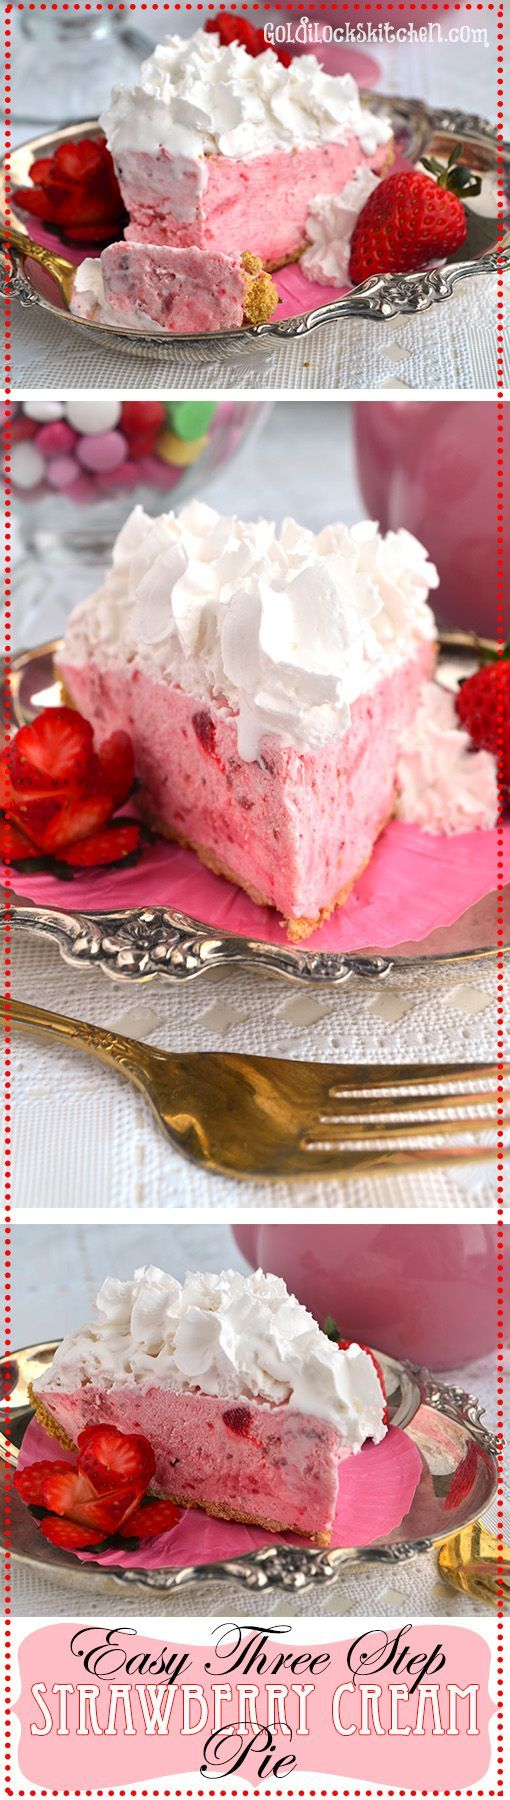 Sweet strawberries enveloped by billowy whipped cream create a dreamy pie that is a cinch to make. No bake, 3 simple steps! Perfect valentines day dessert :0)